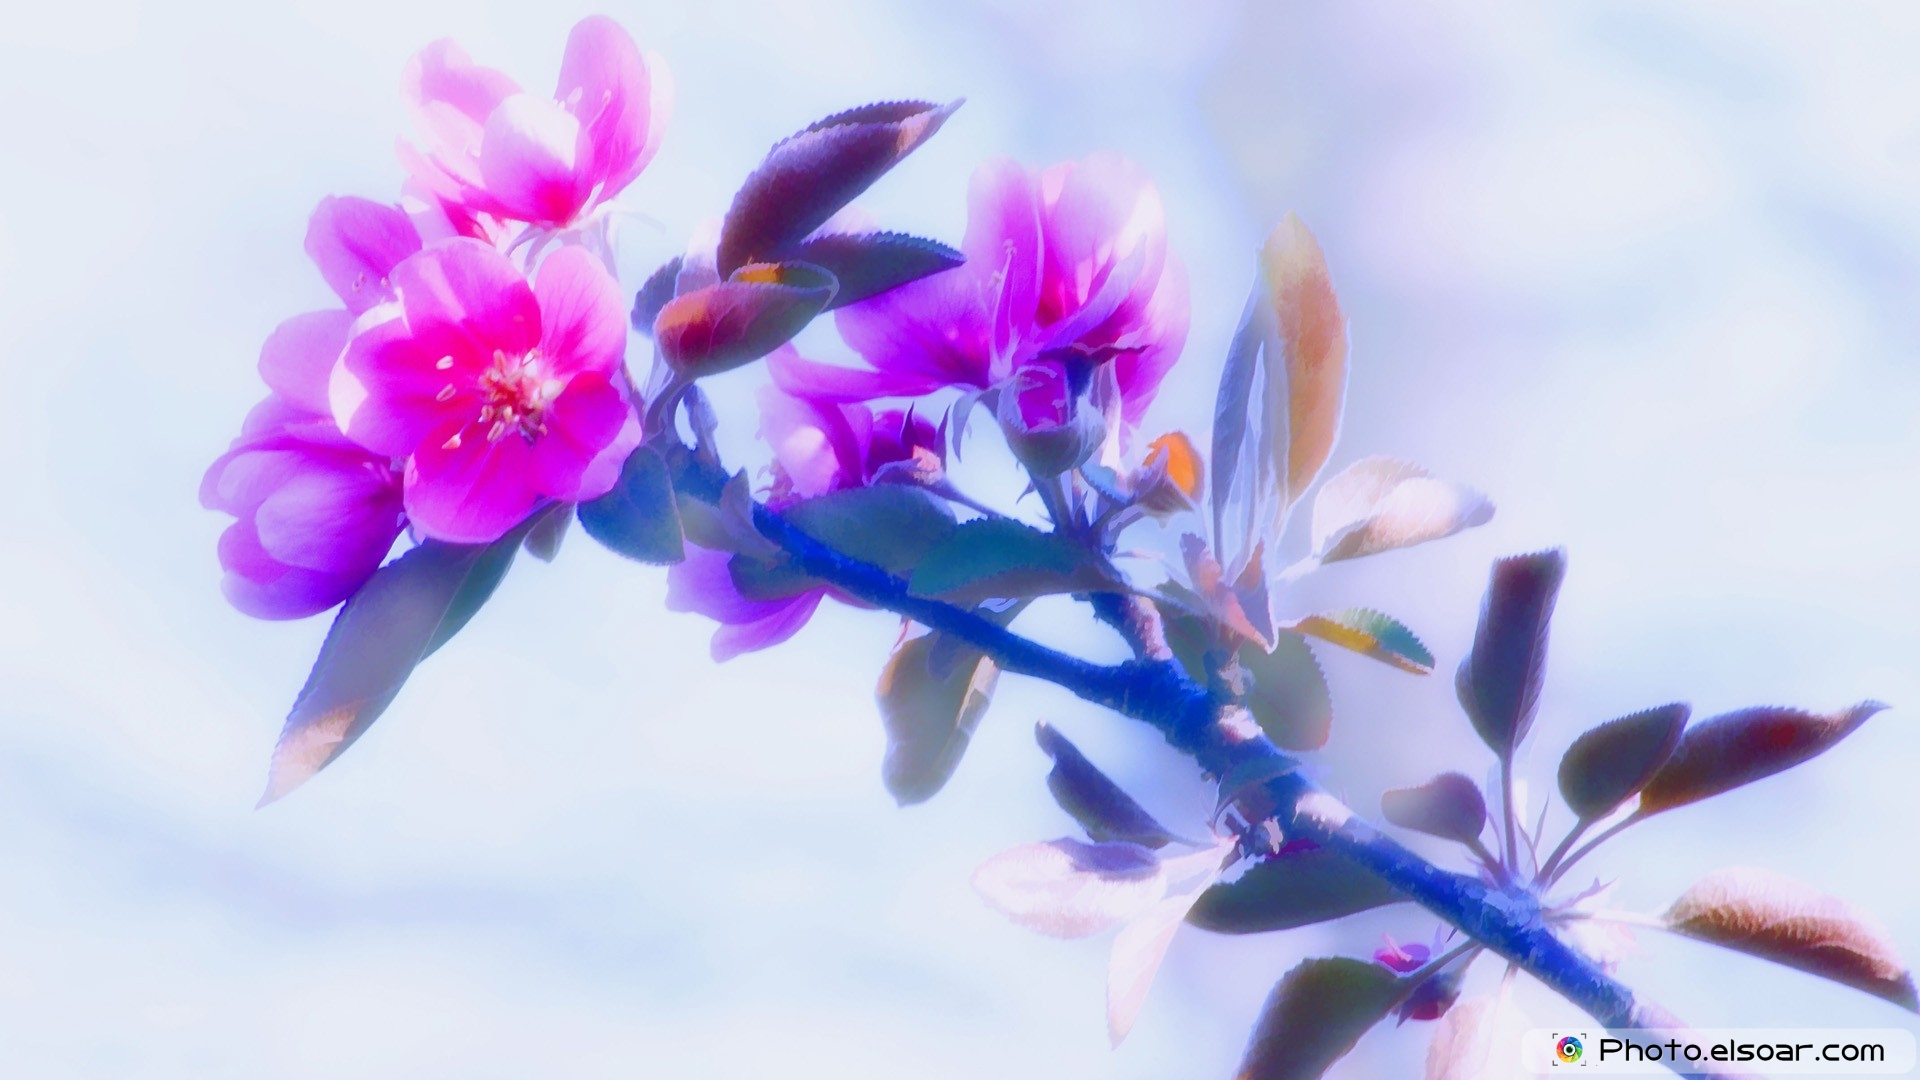 10 Multi-Colored Flowers Full HD Wallpapers, Free Download